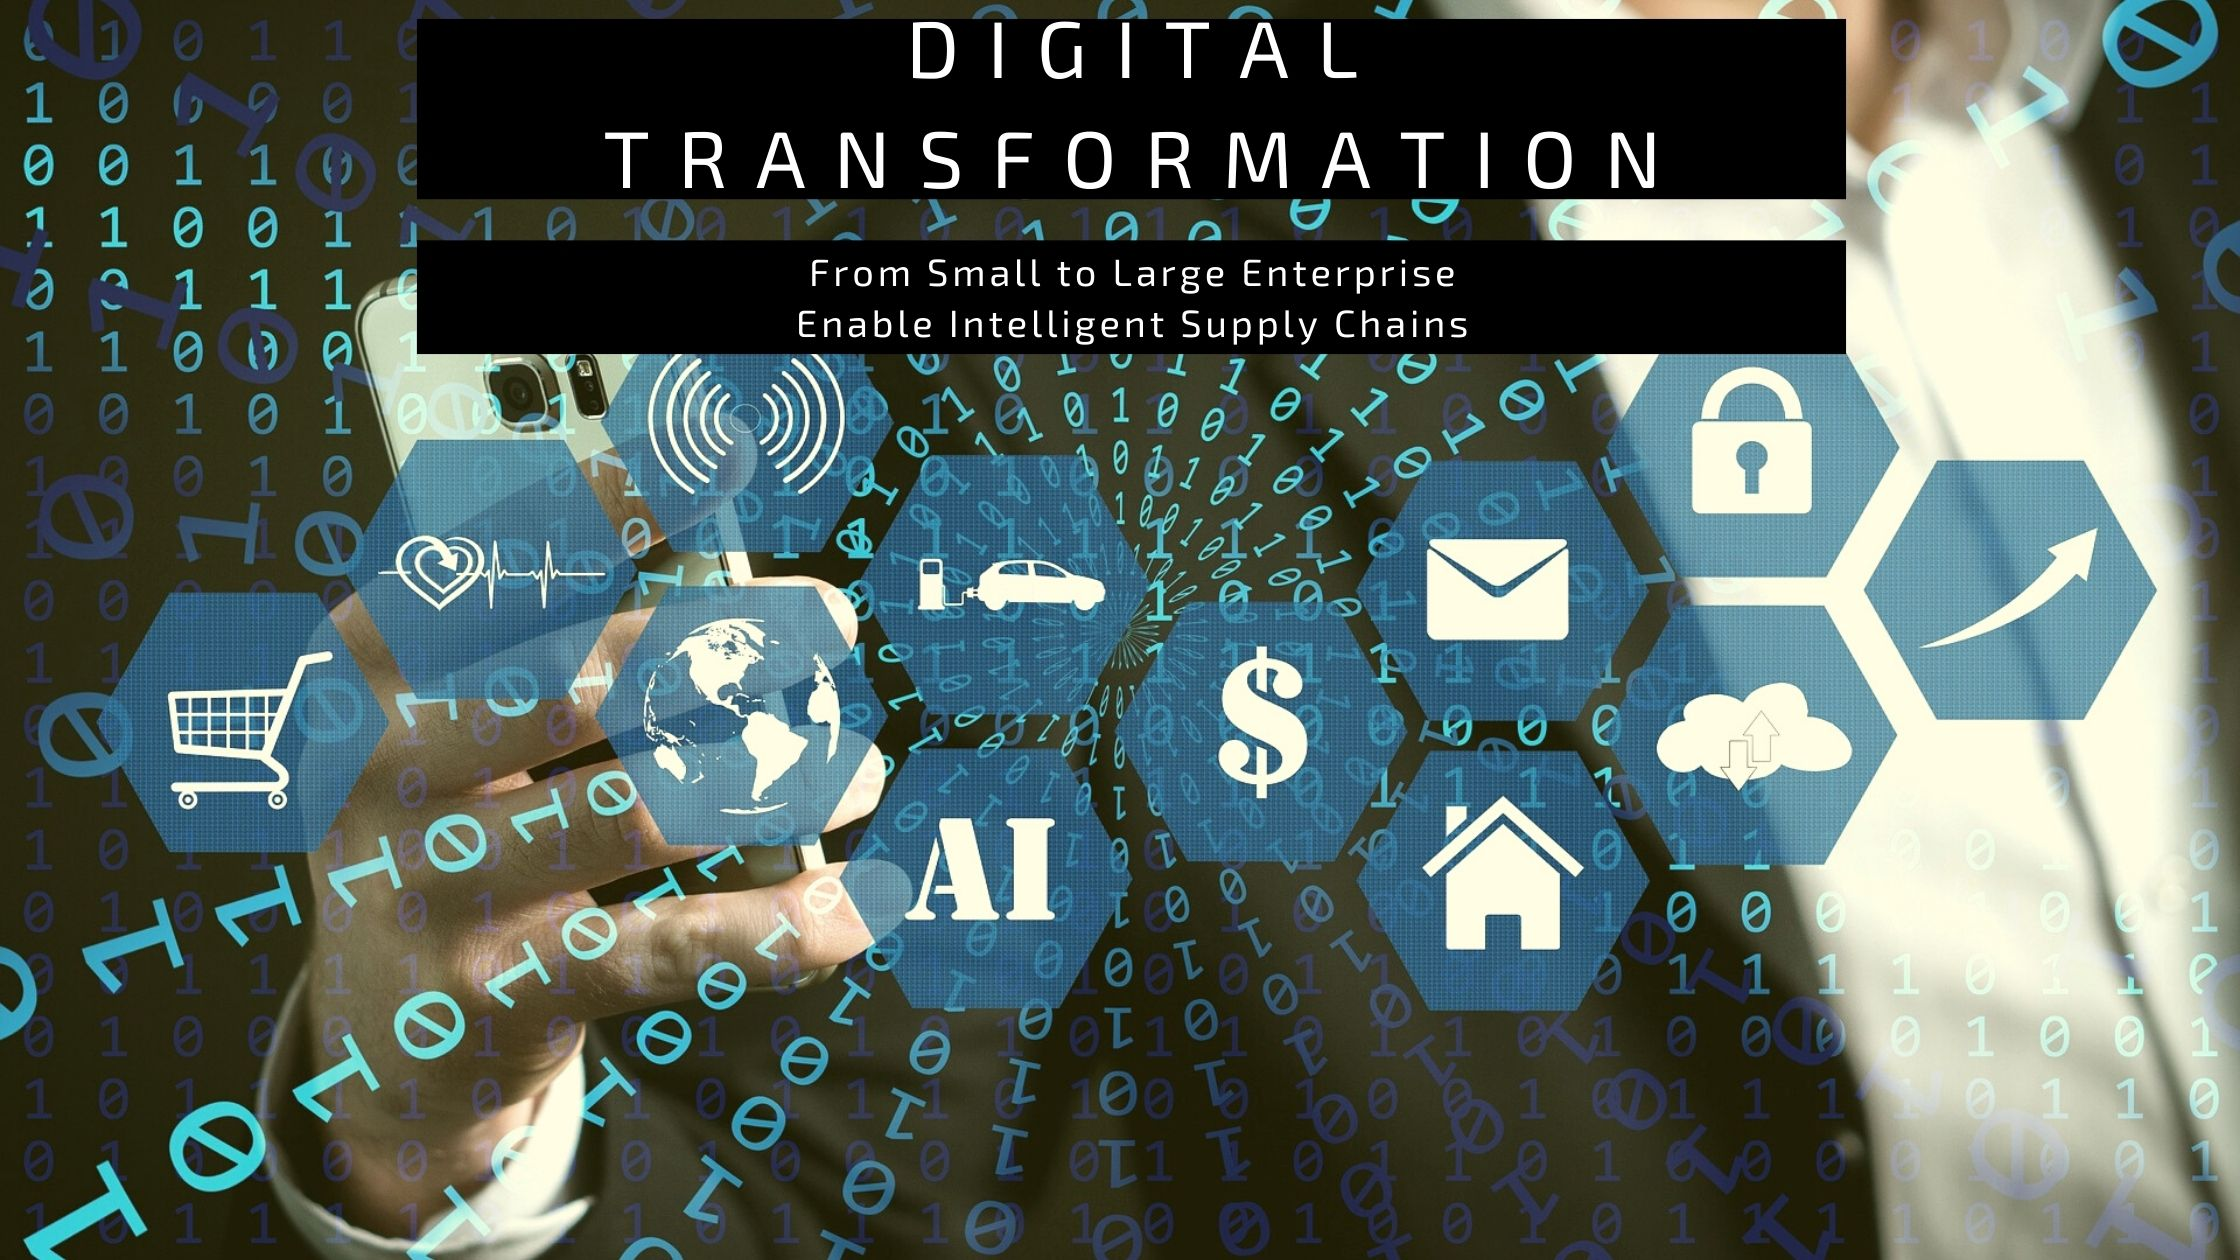 Digital Transformation from small to large enterprise